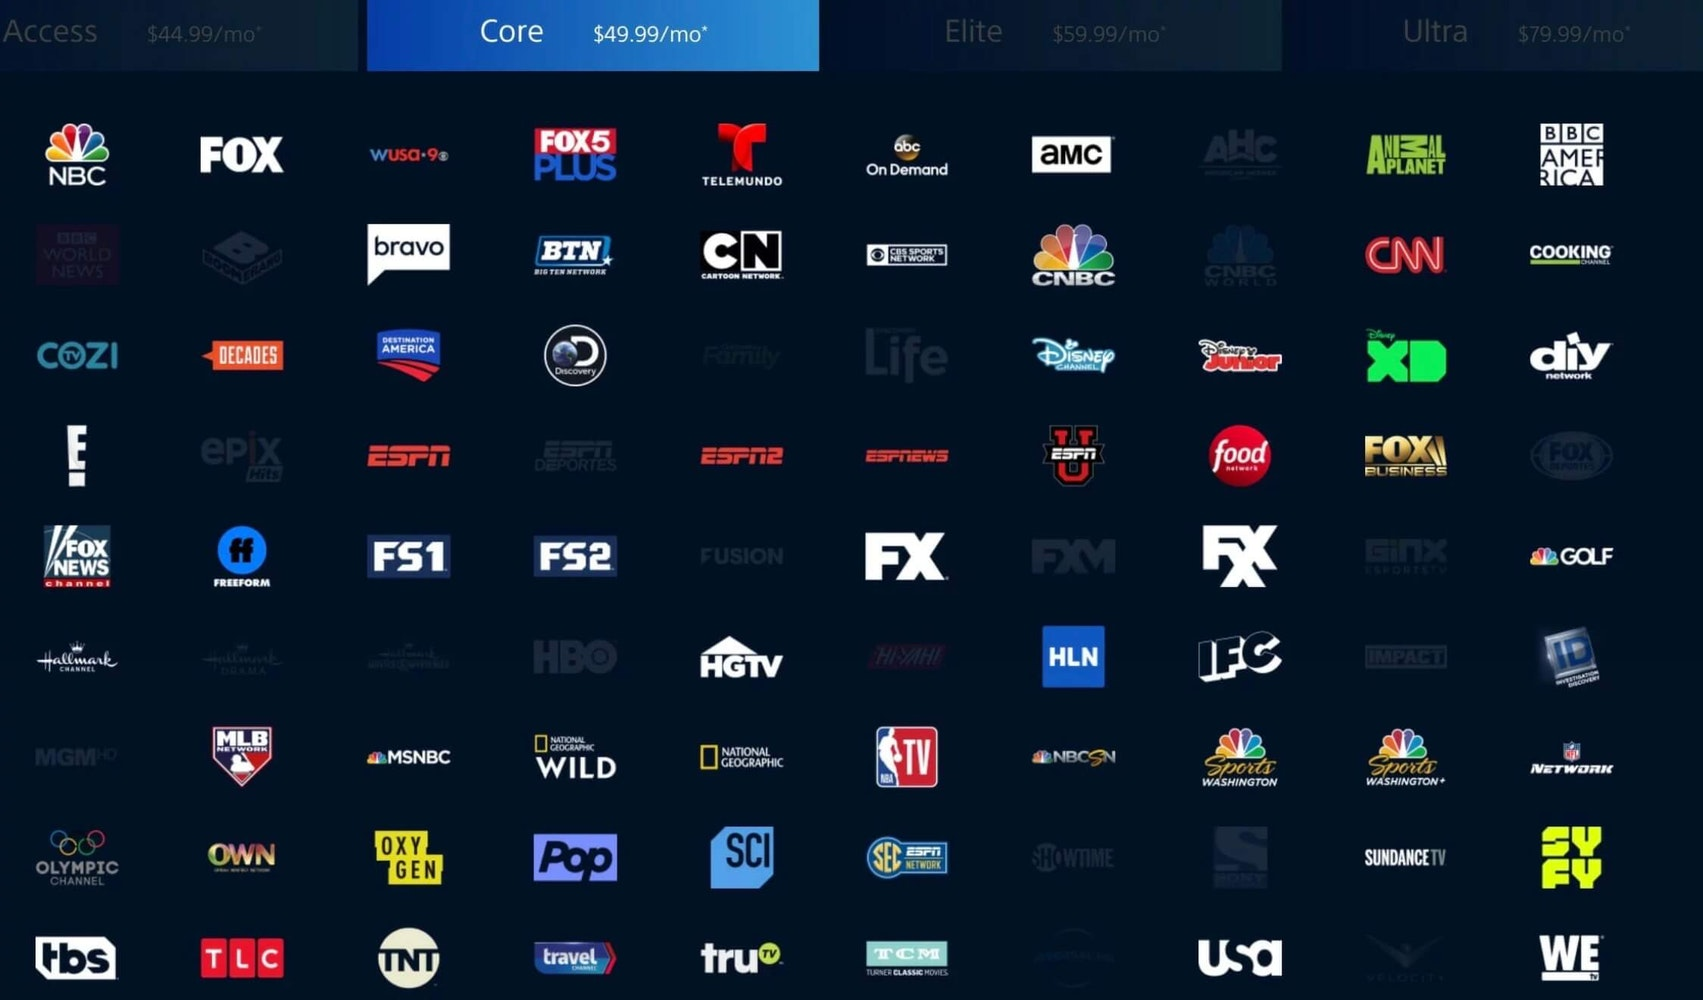 2019-20 premier league manchester united vs liverpool soccer live stream free playstation vue